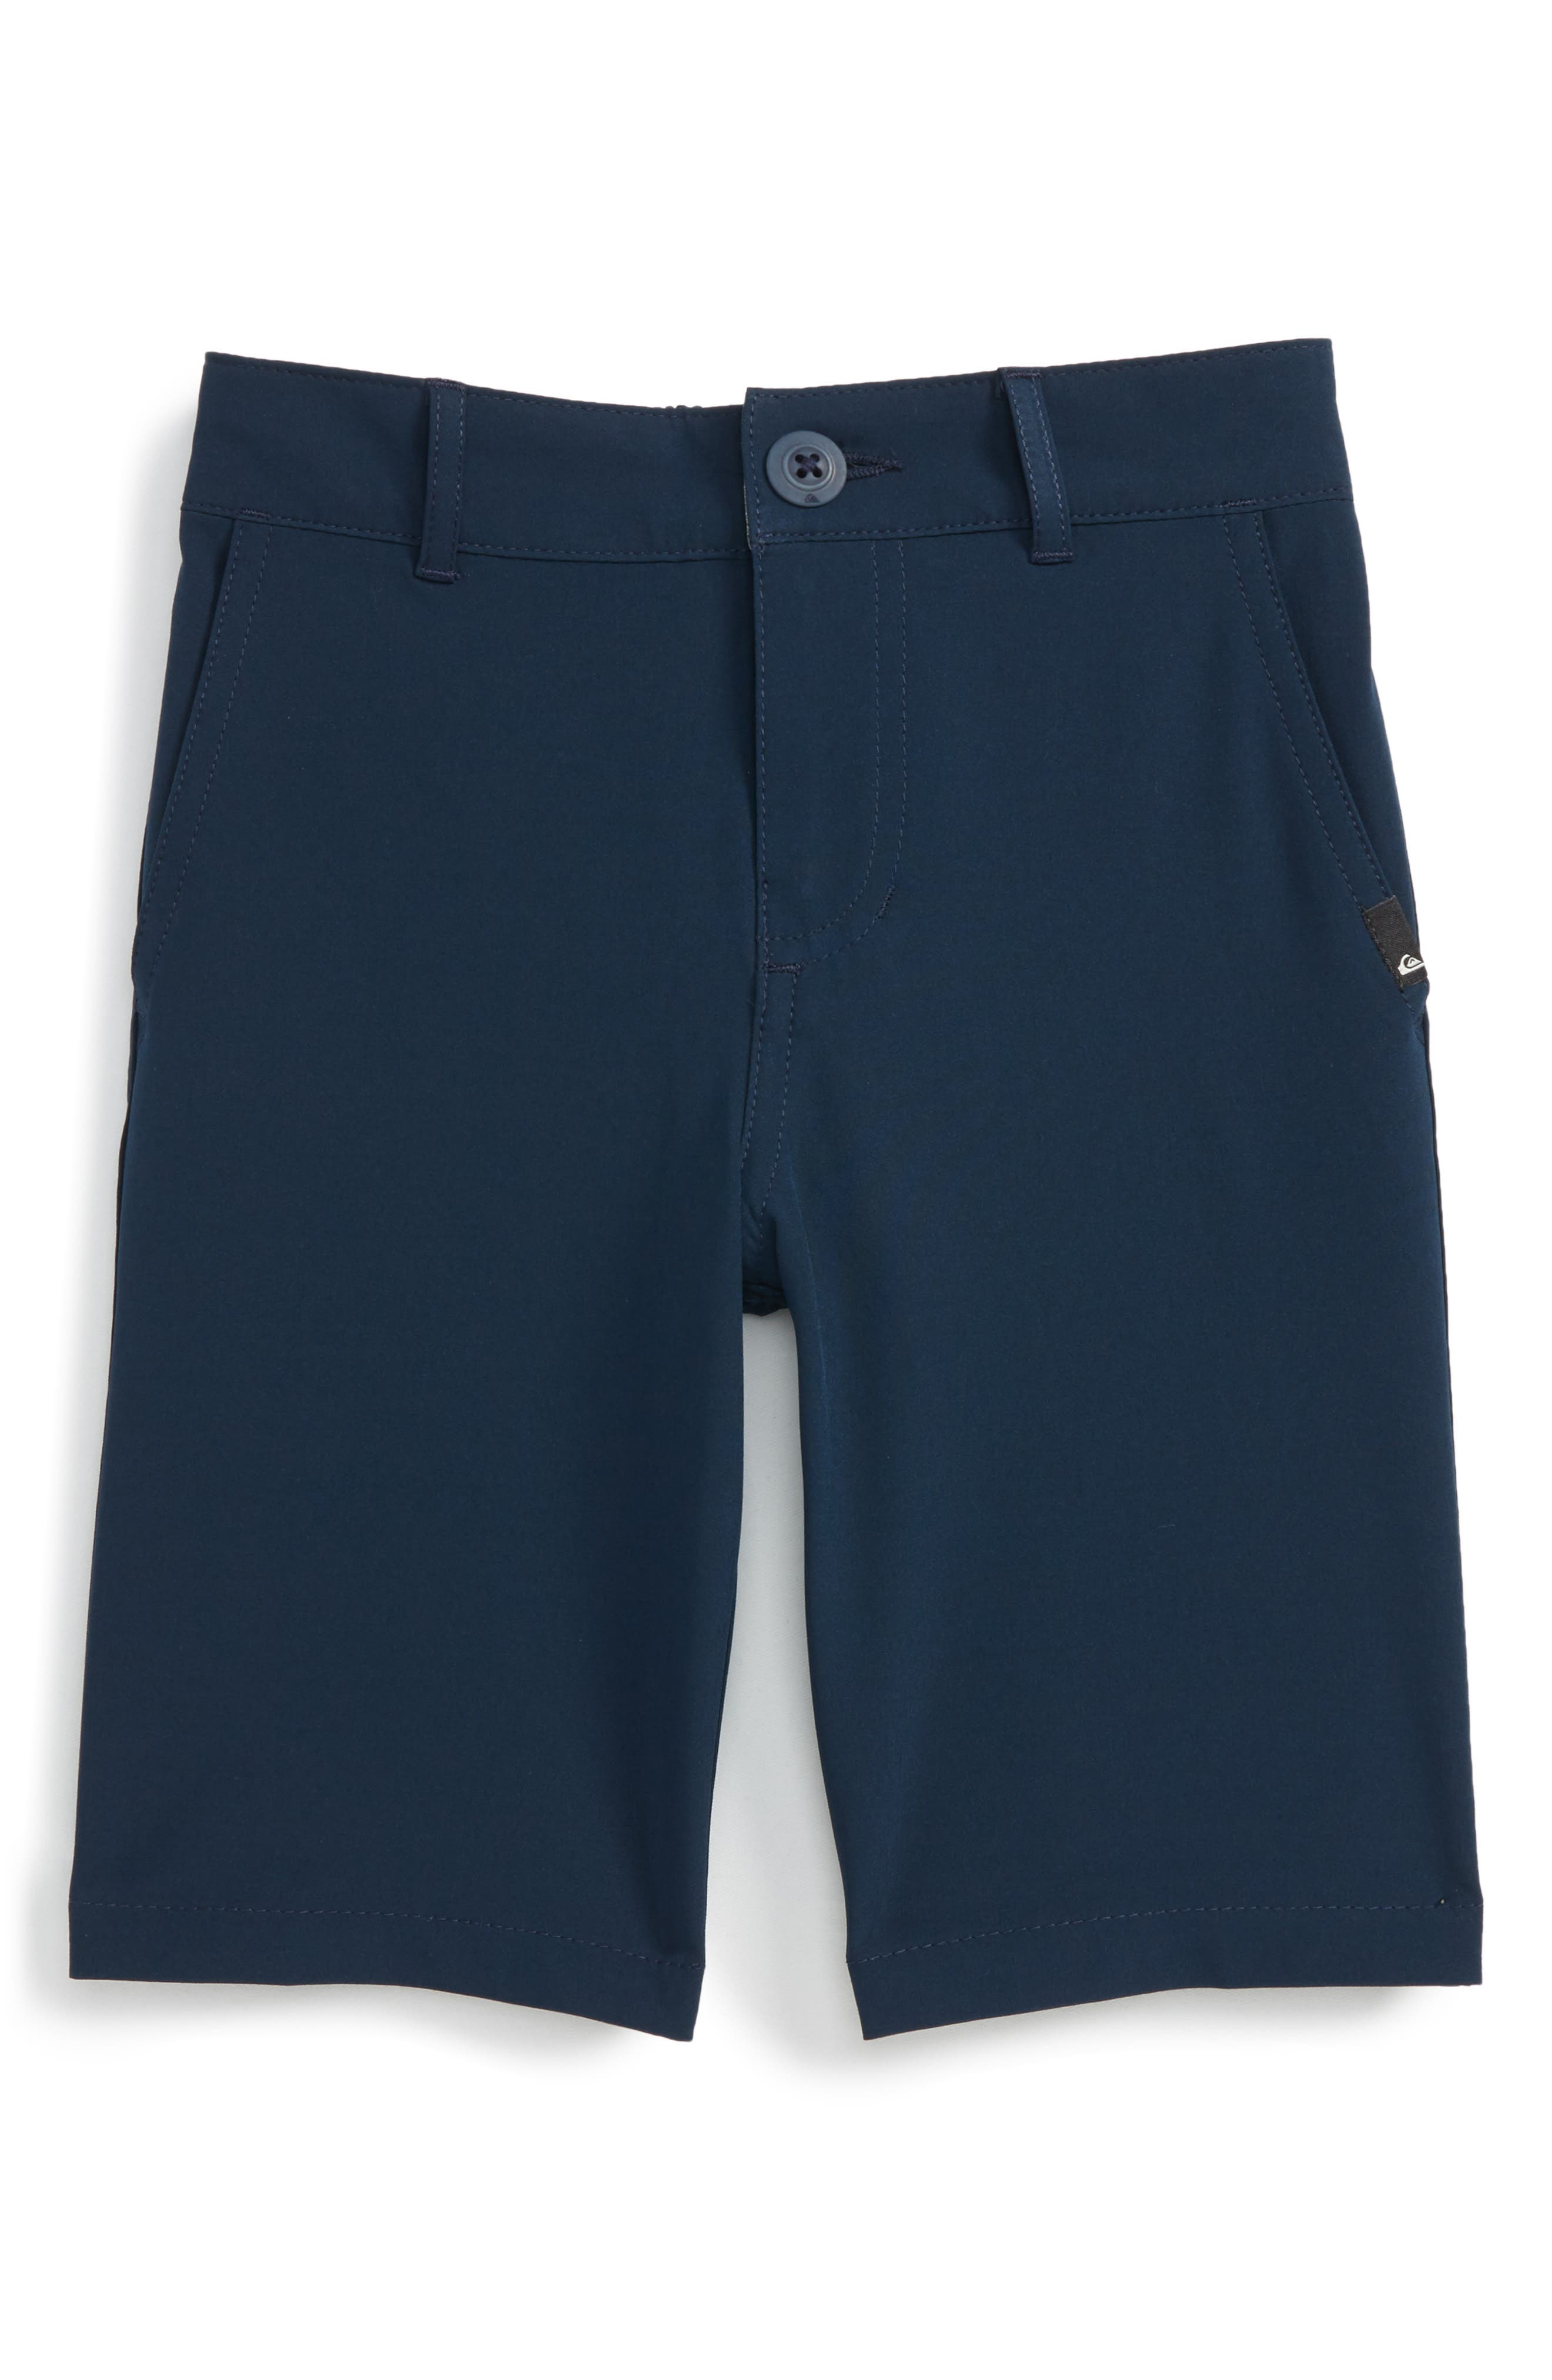 Quiksilver Amphibian Hybrid Shorts (Toddler Boys & Little Boys)